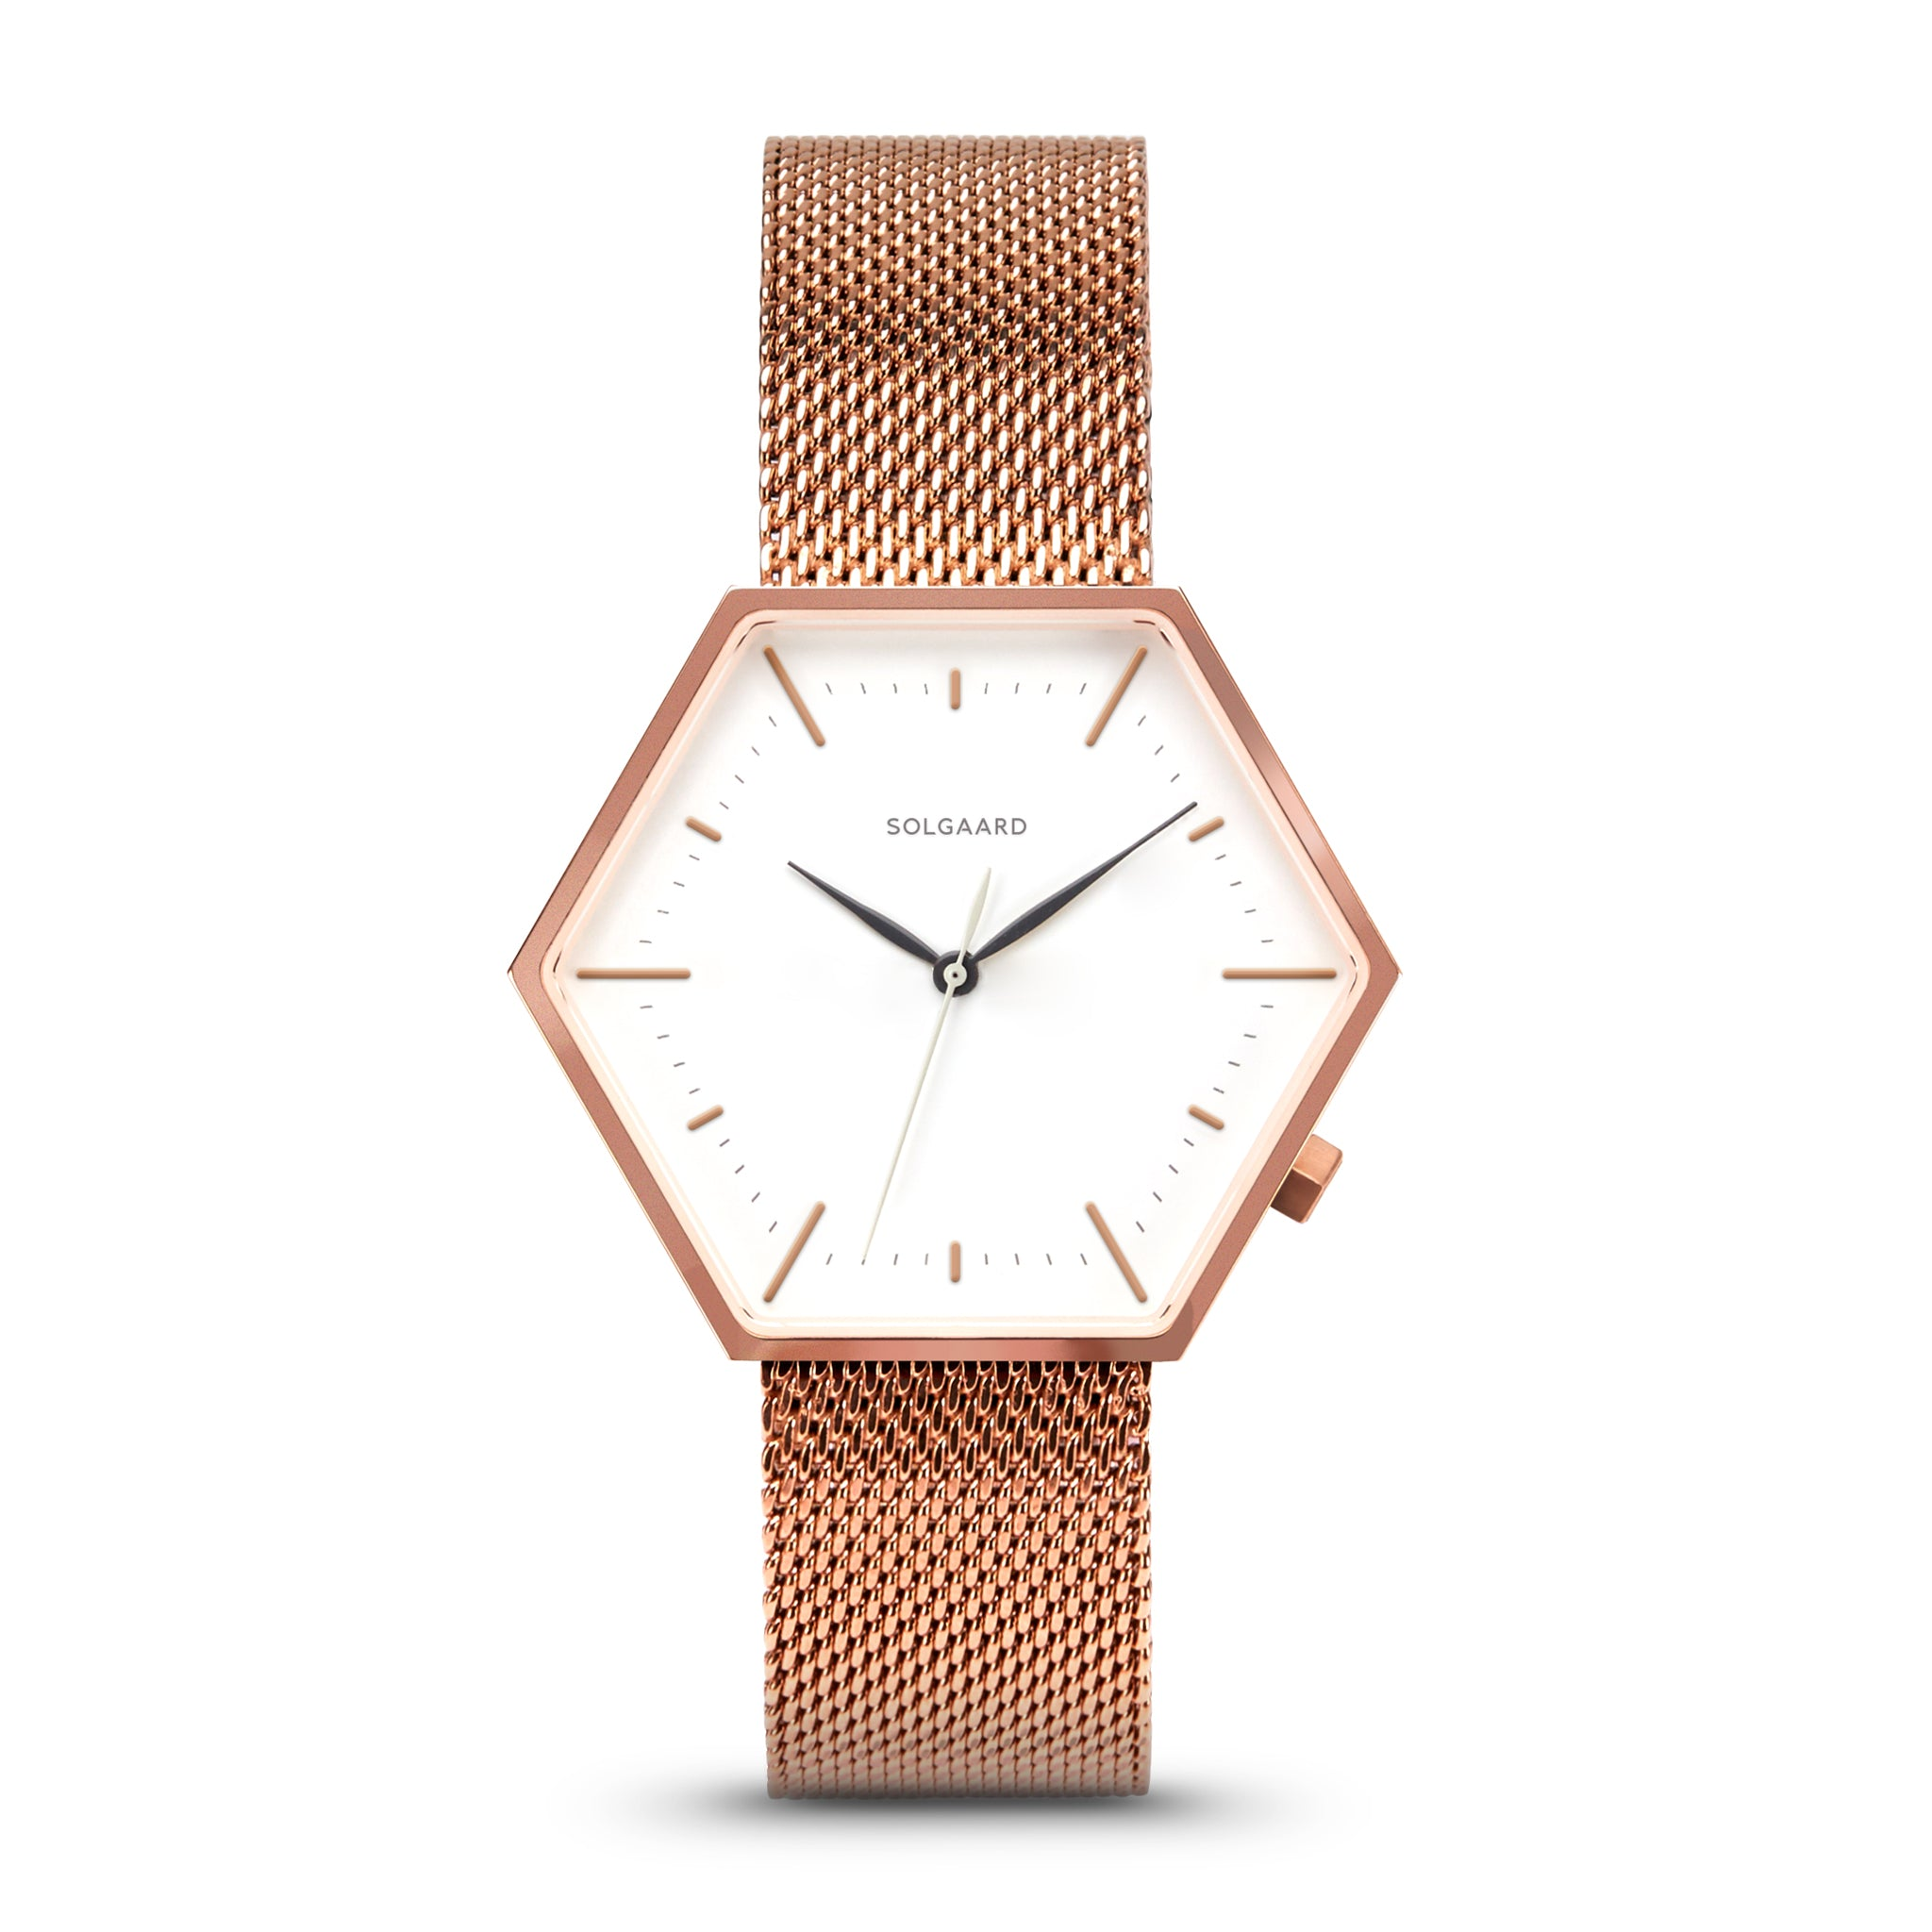 rosegold watches online e joias one inspire gios gio loja big rel watch oficial company